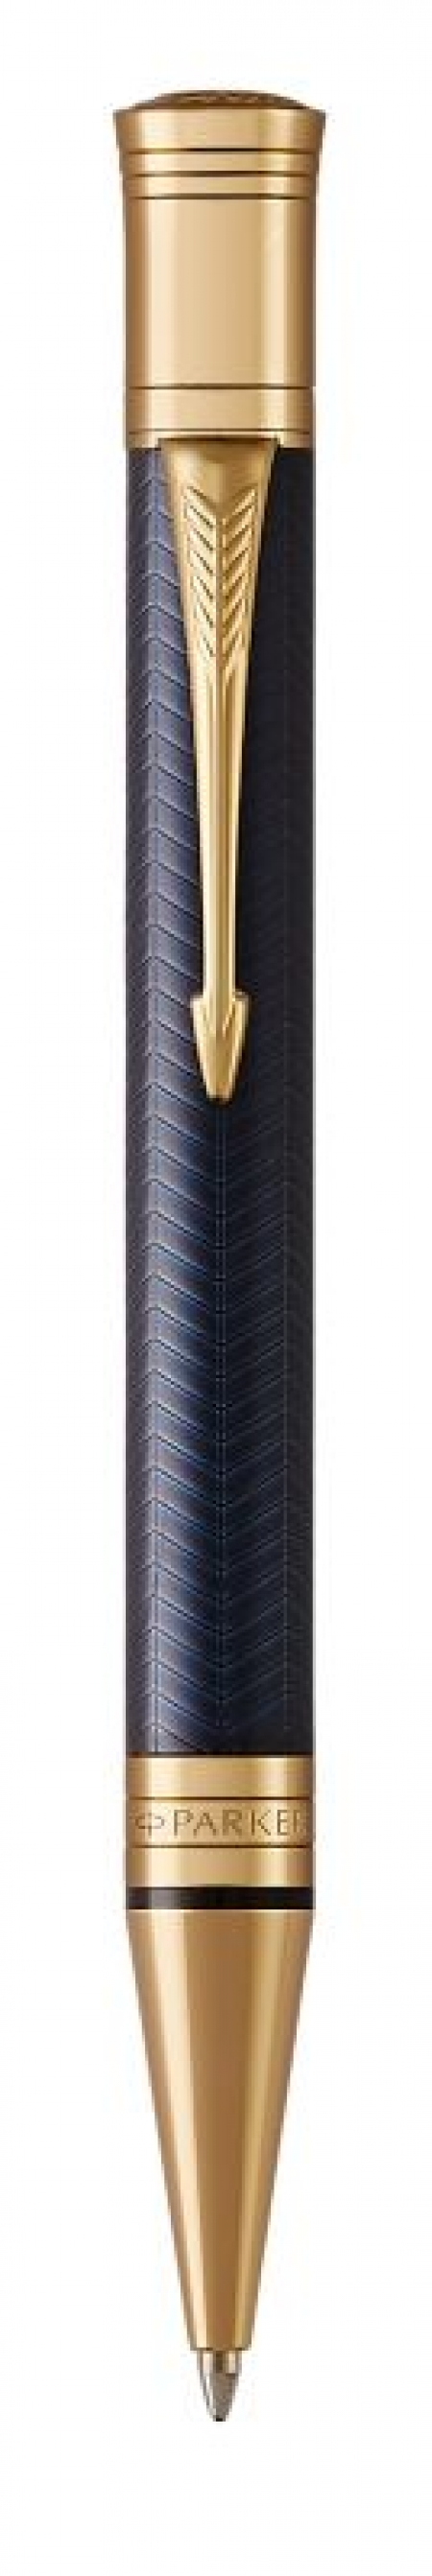 PIX DUOFOLD ROYAL PRESTIGE BLUE CHEVRON GT